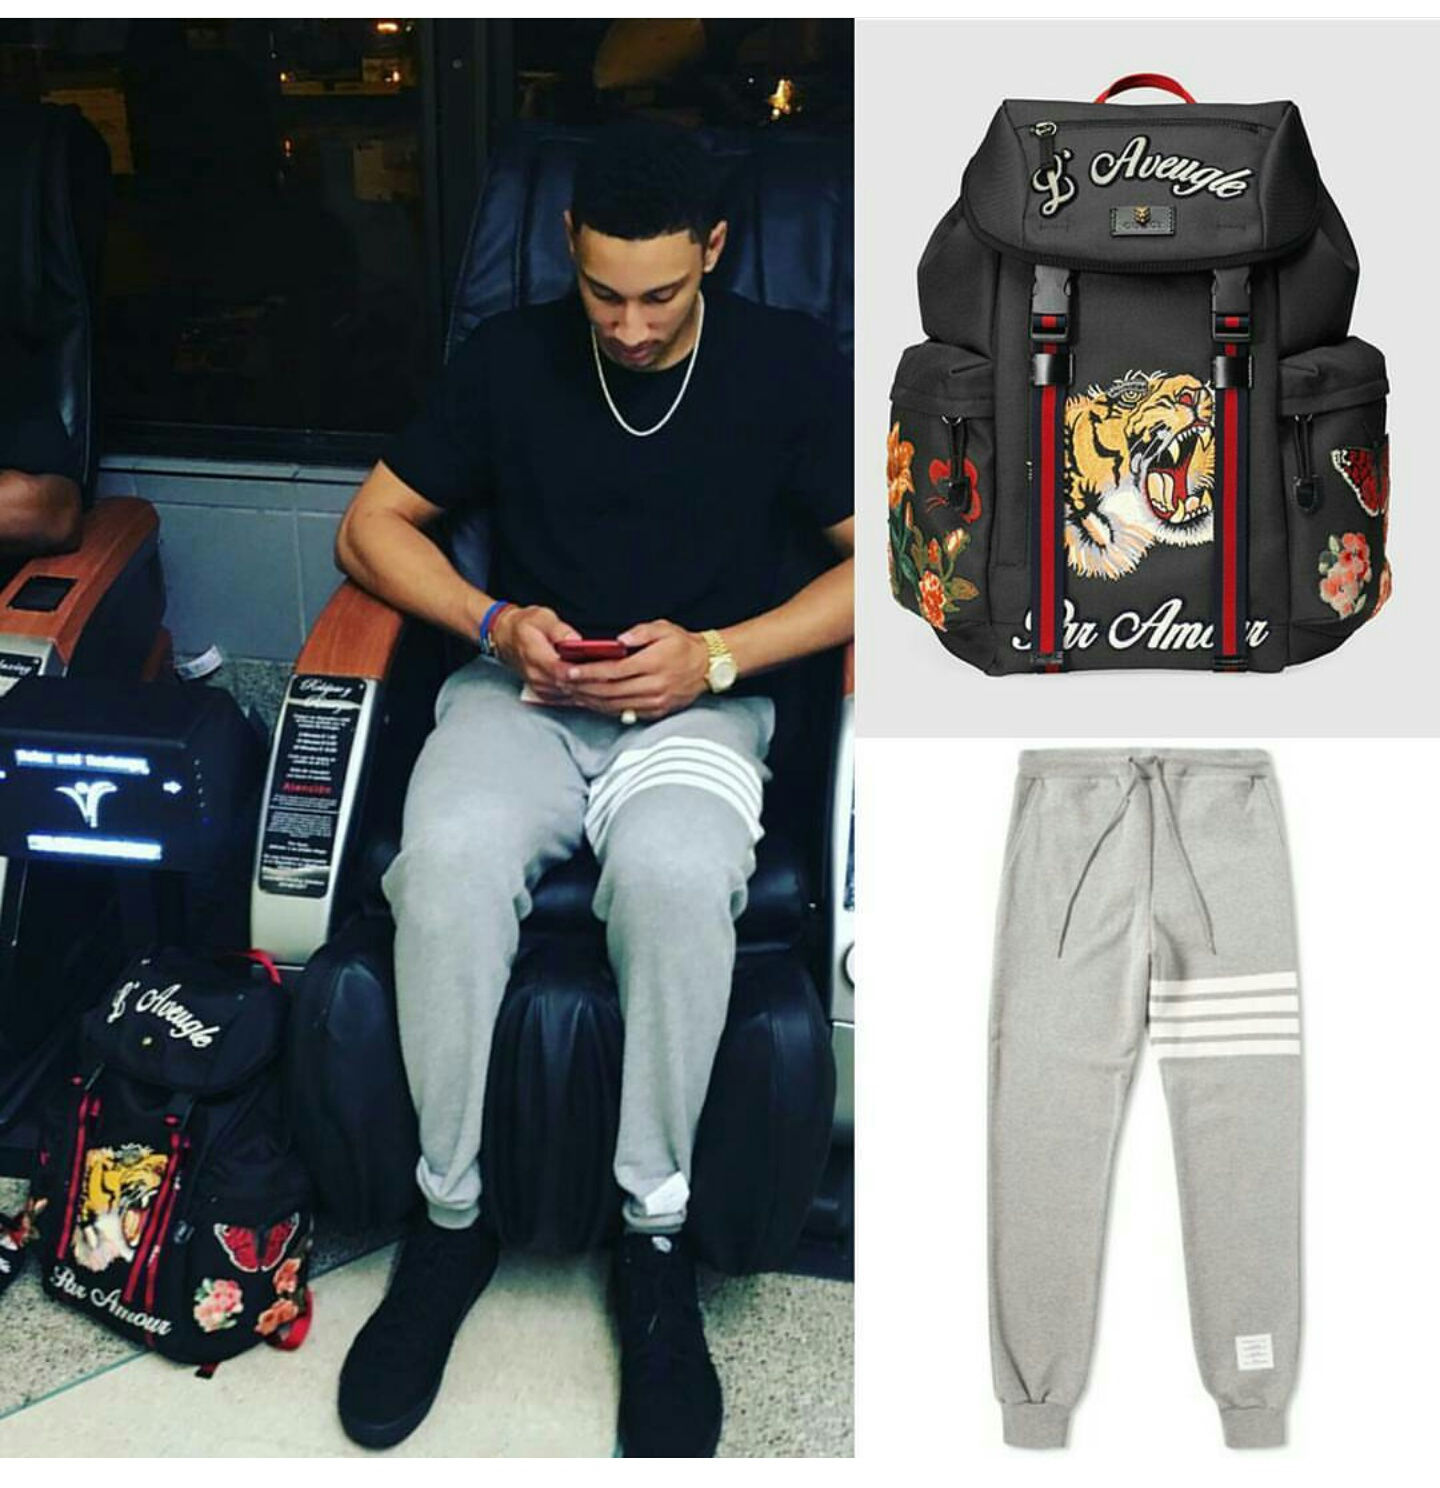 STYLE: NBA Ben Simmons' Instagram Thom Browne Sweatpants And Gucci Techpack With Embroidery